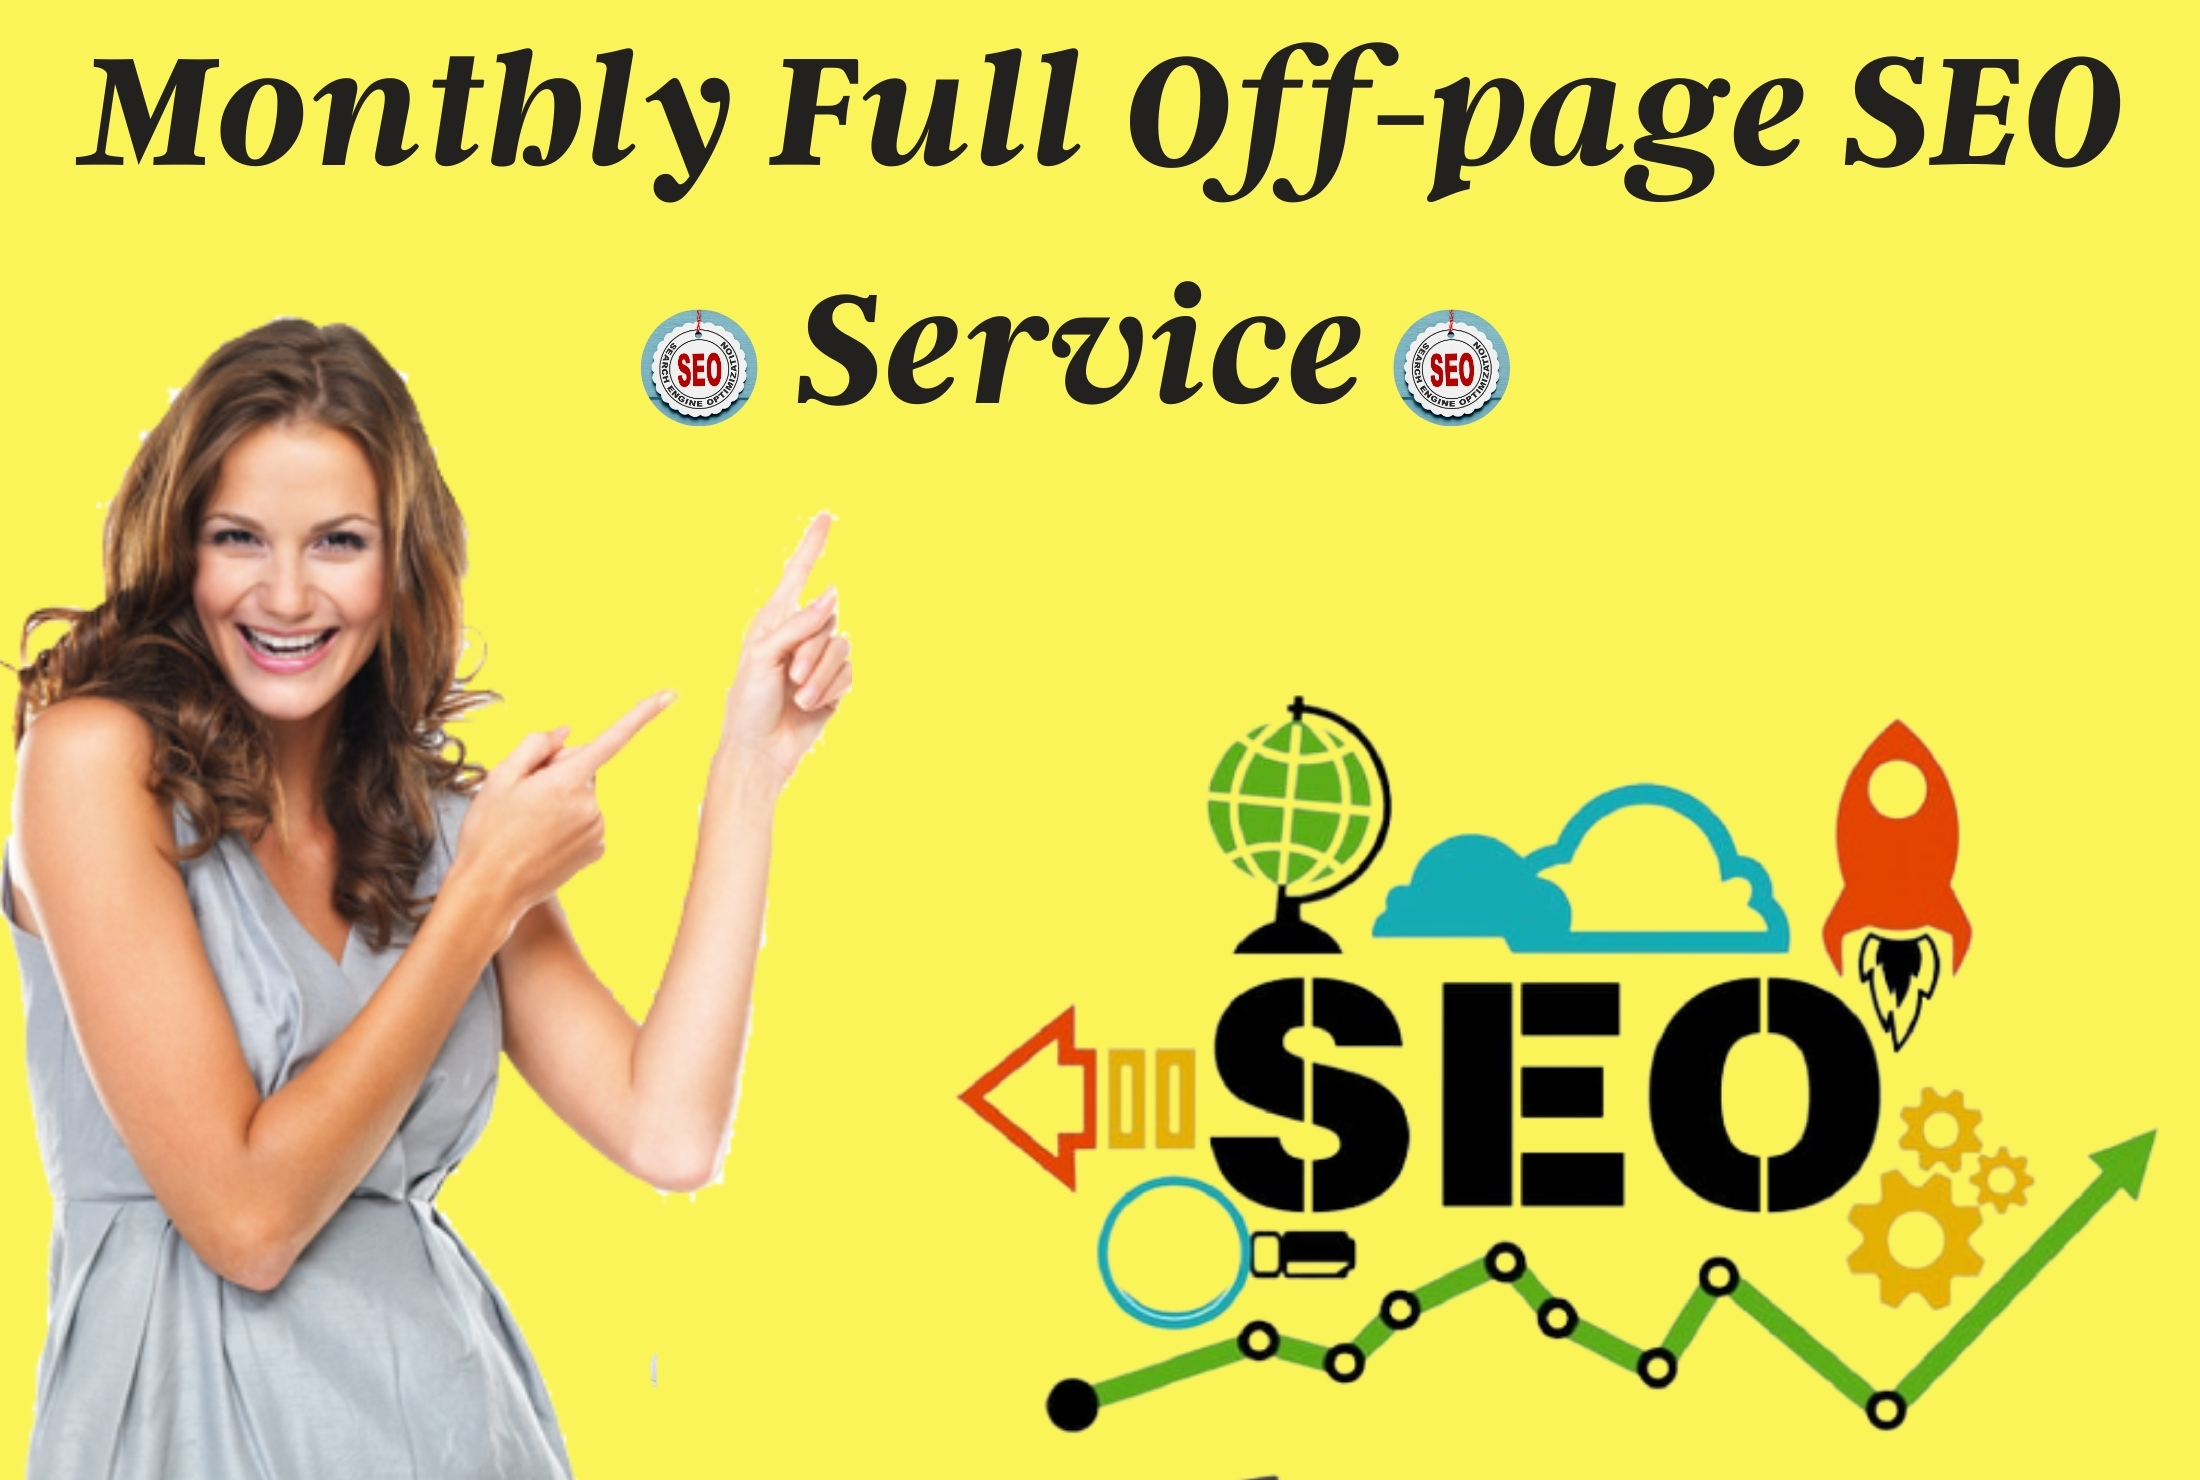 Monthly full off page SEO service with High Quality 750 backlink